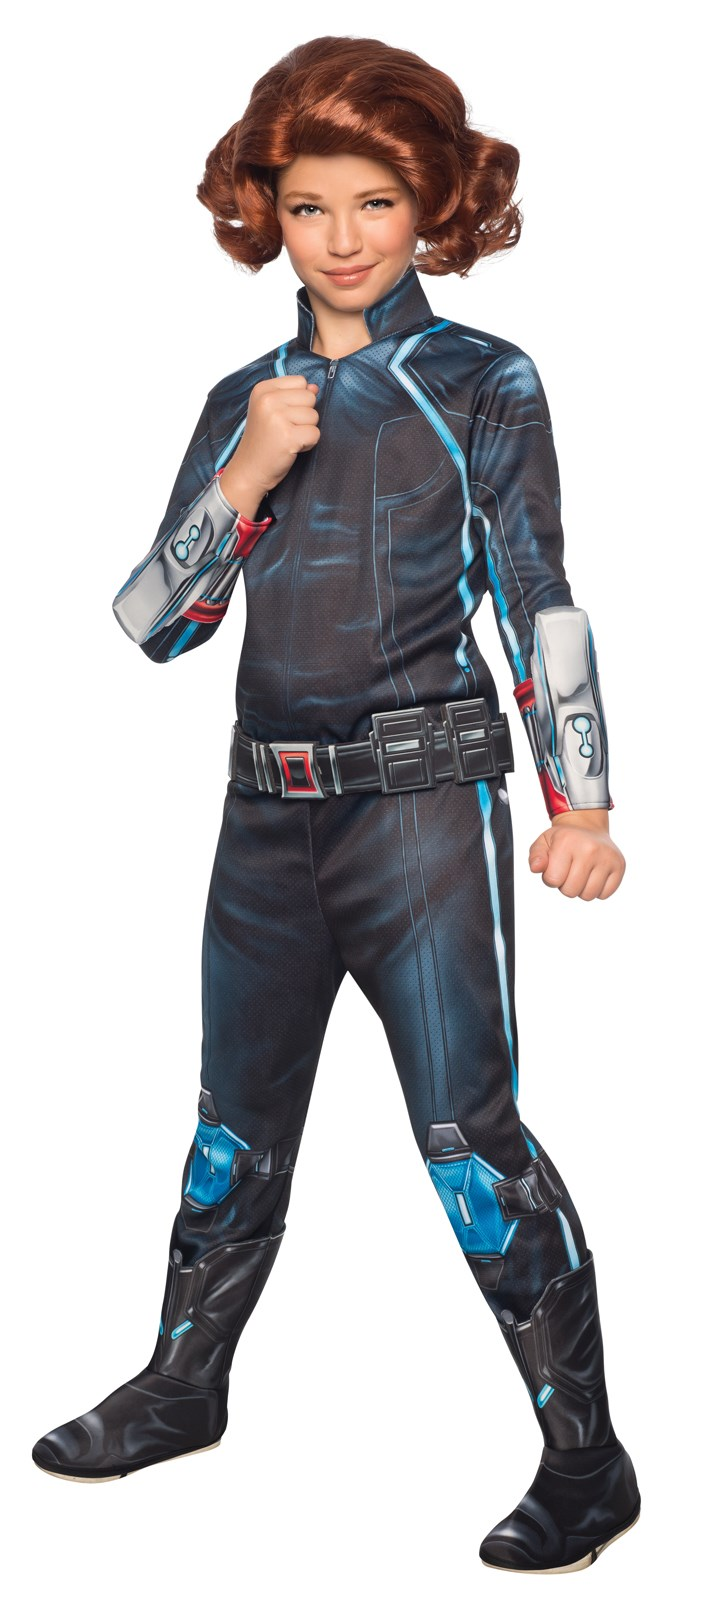 Avengers 2 - Age of Ultron: Deluxe Black Widow Kids Costume Medium (8-10)